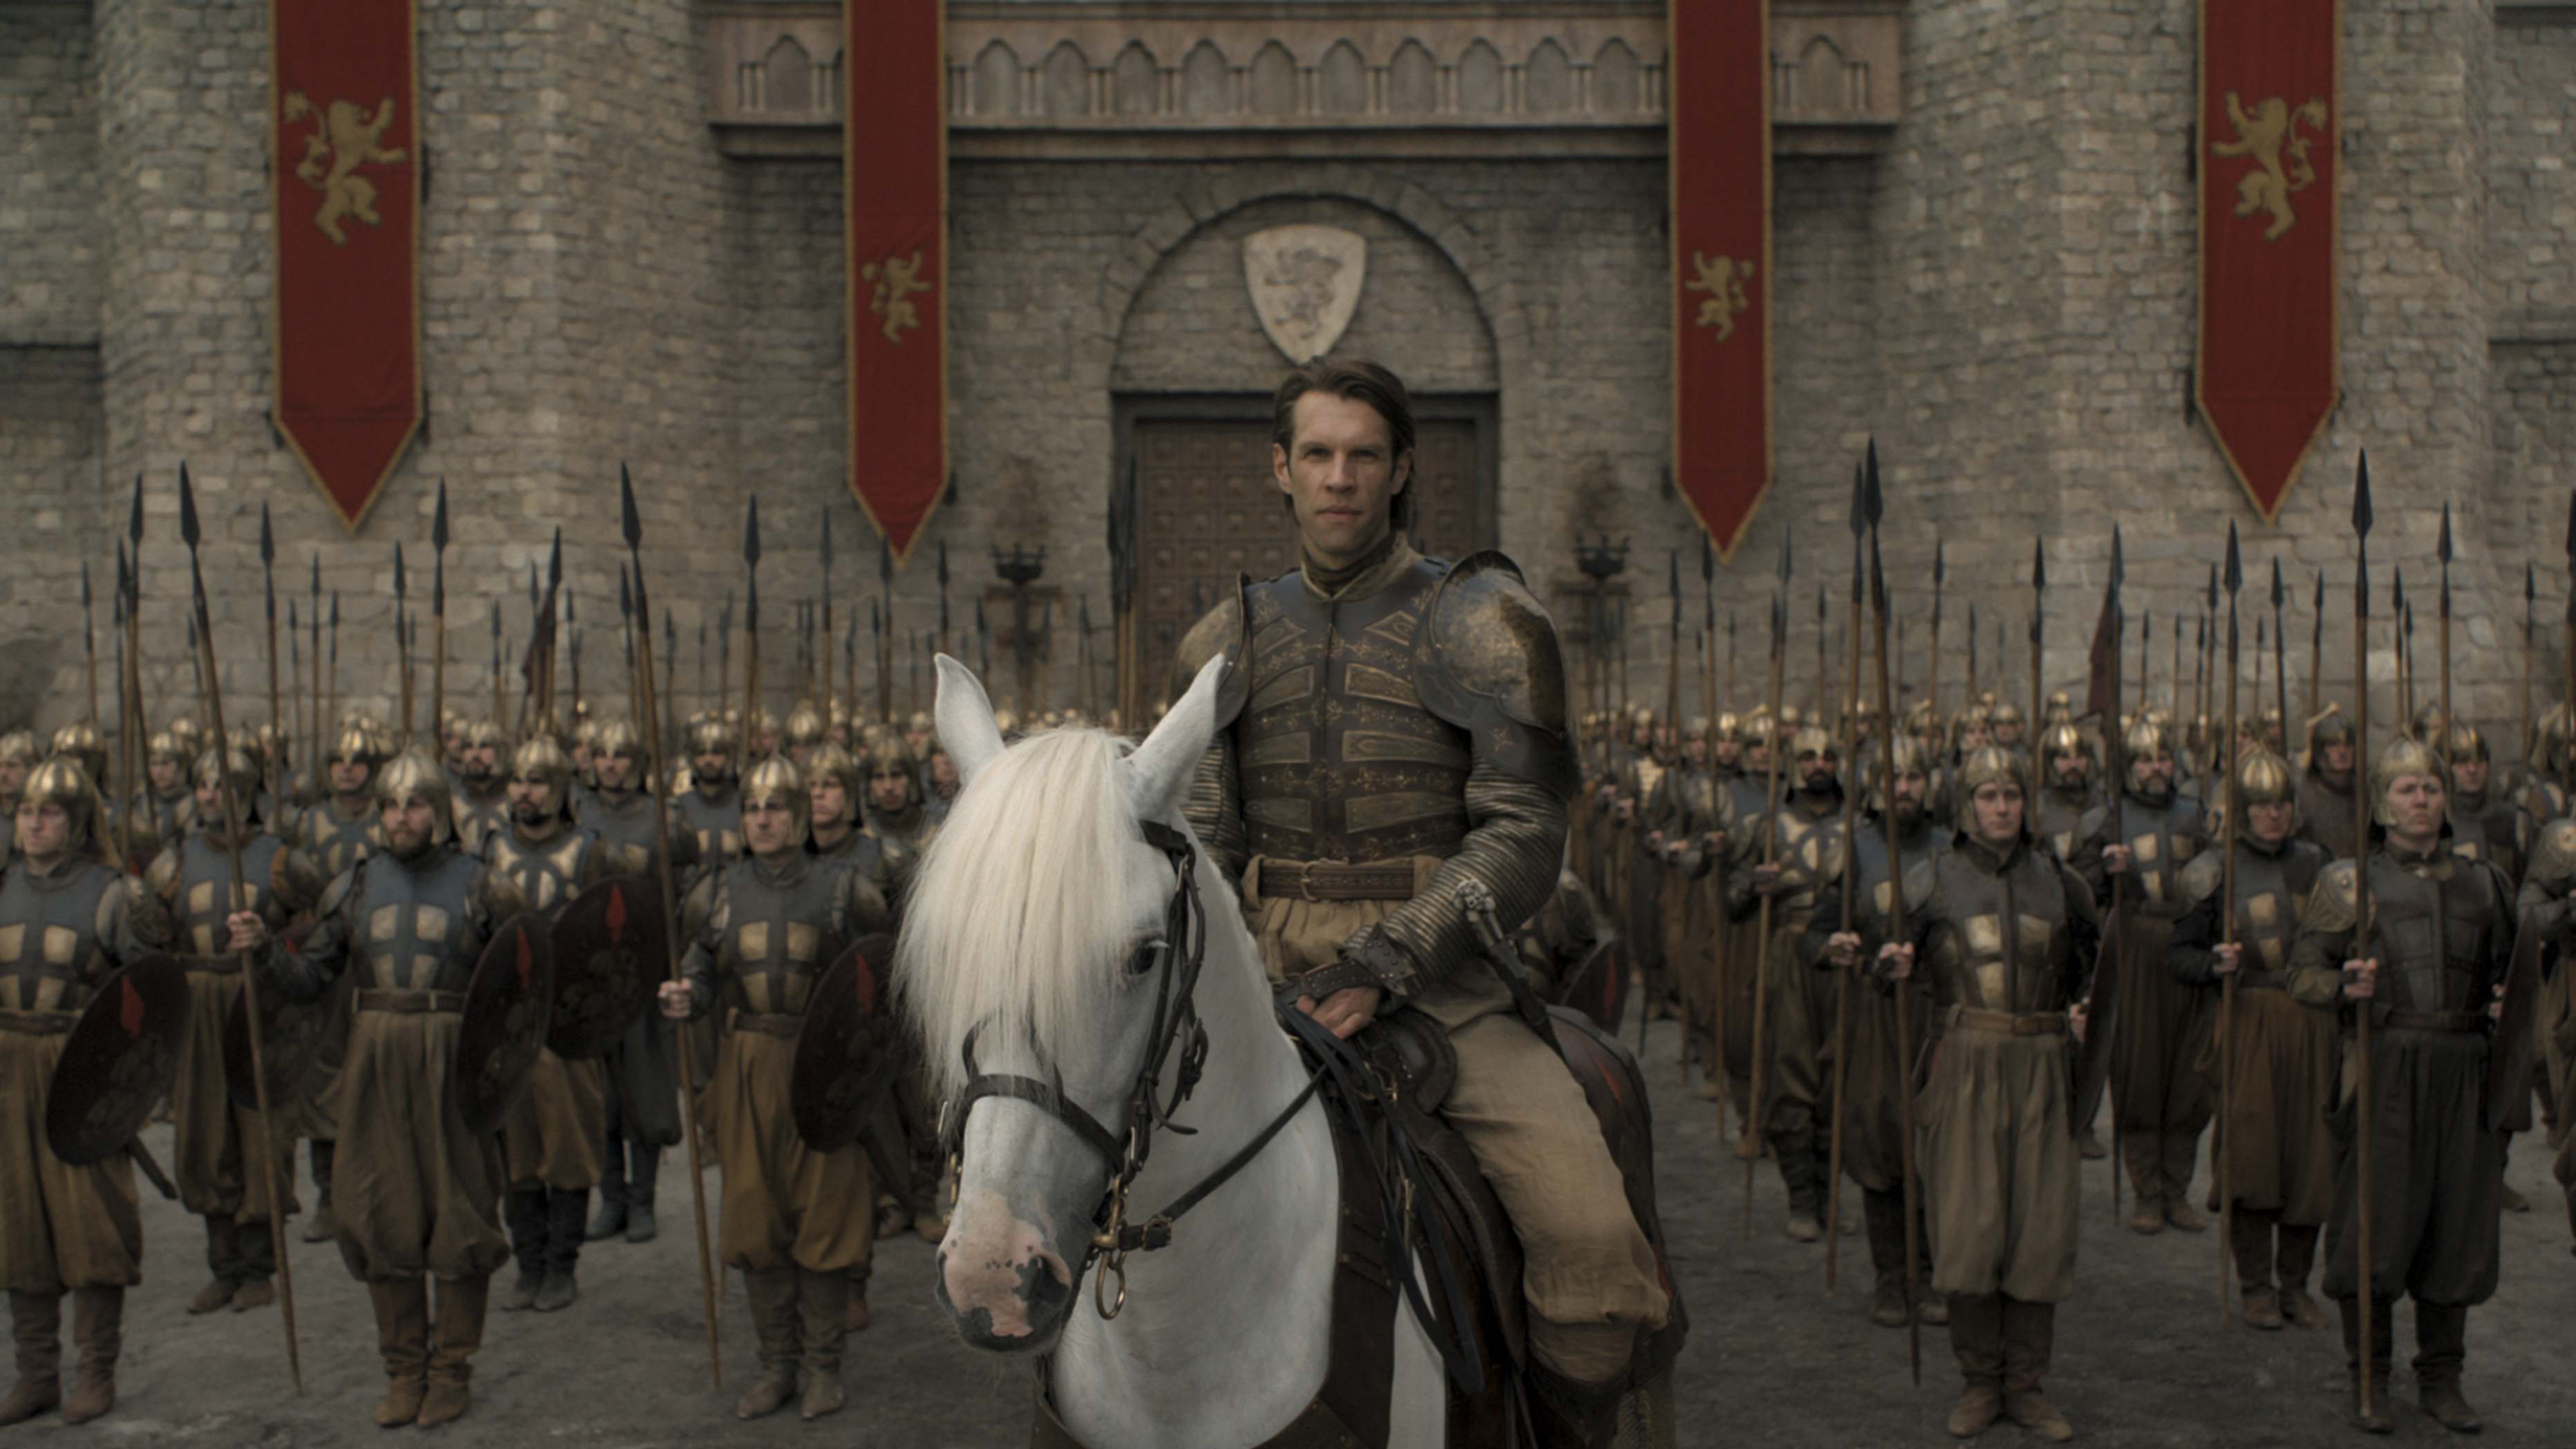 Big spears/Horse ears/Gol-den Companyyyyy: Harry Strickland (Marc Rissmann) — seriously, that's his name, Harry Strickland — leads an army of mercenaries in the penultimate episode of Game of Thrones.